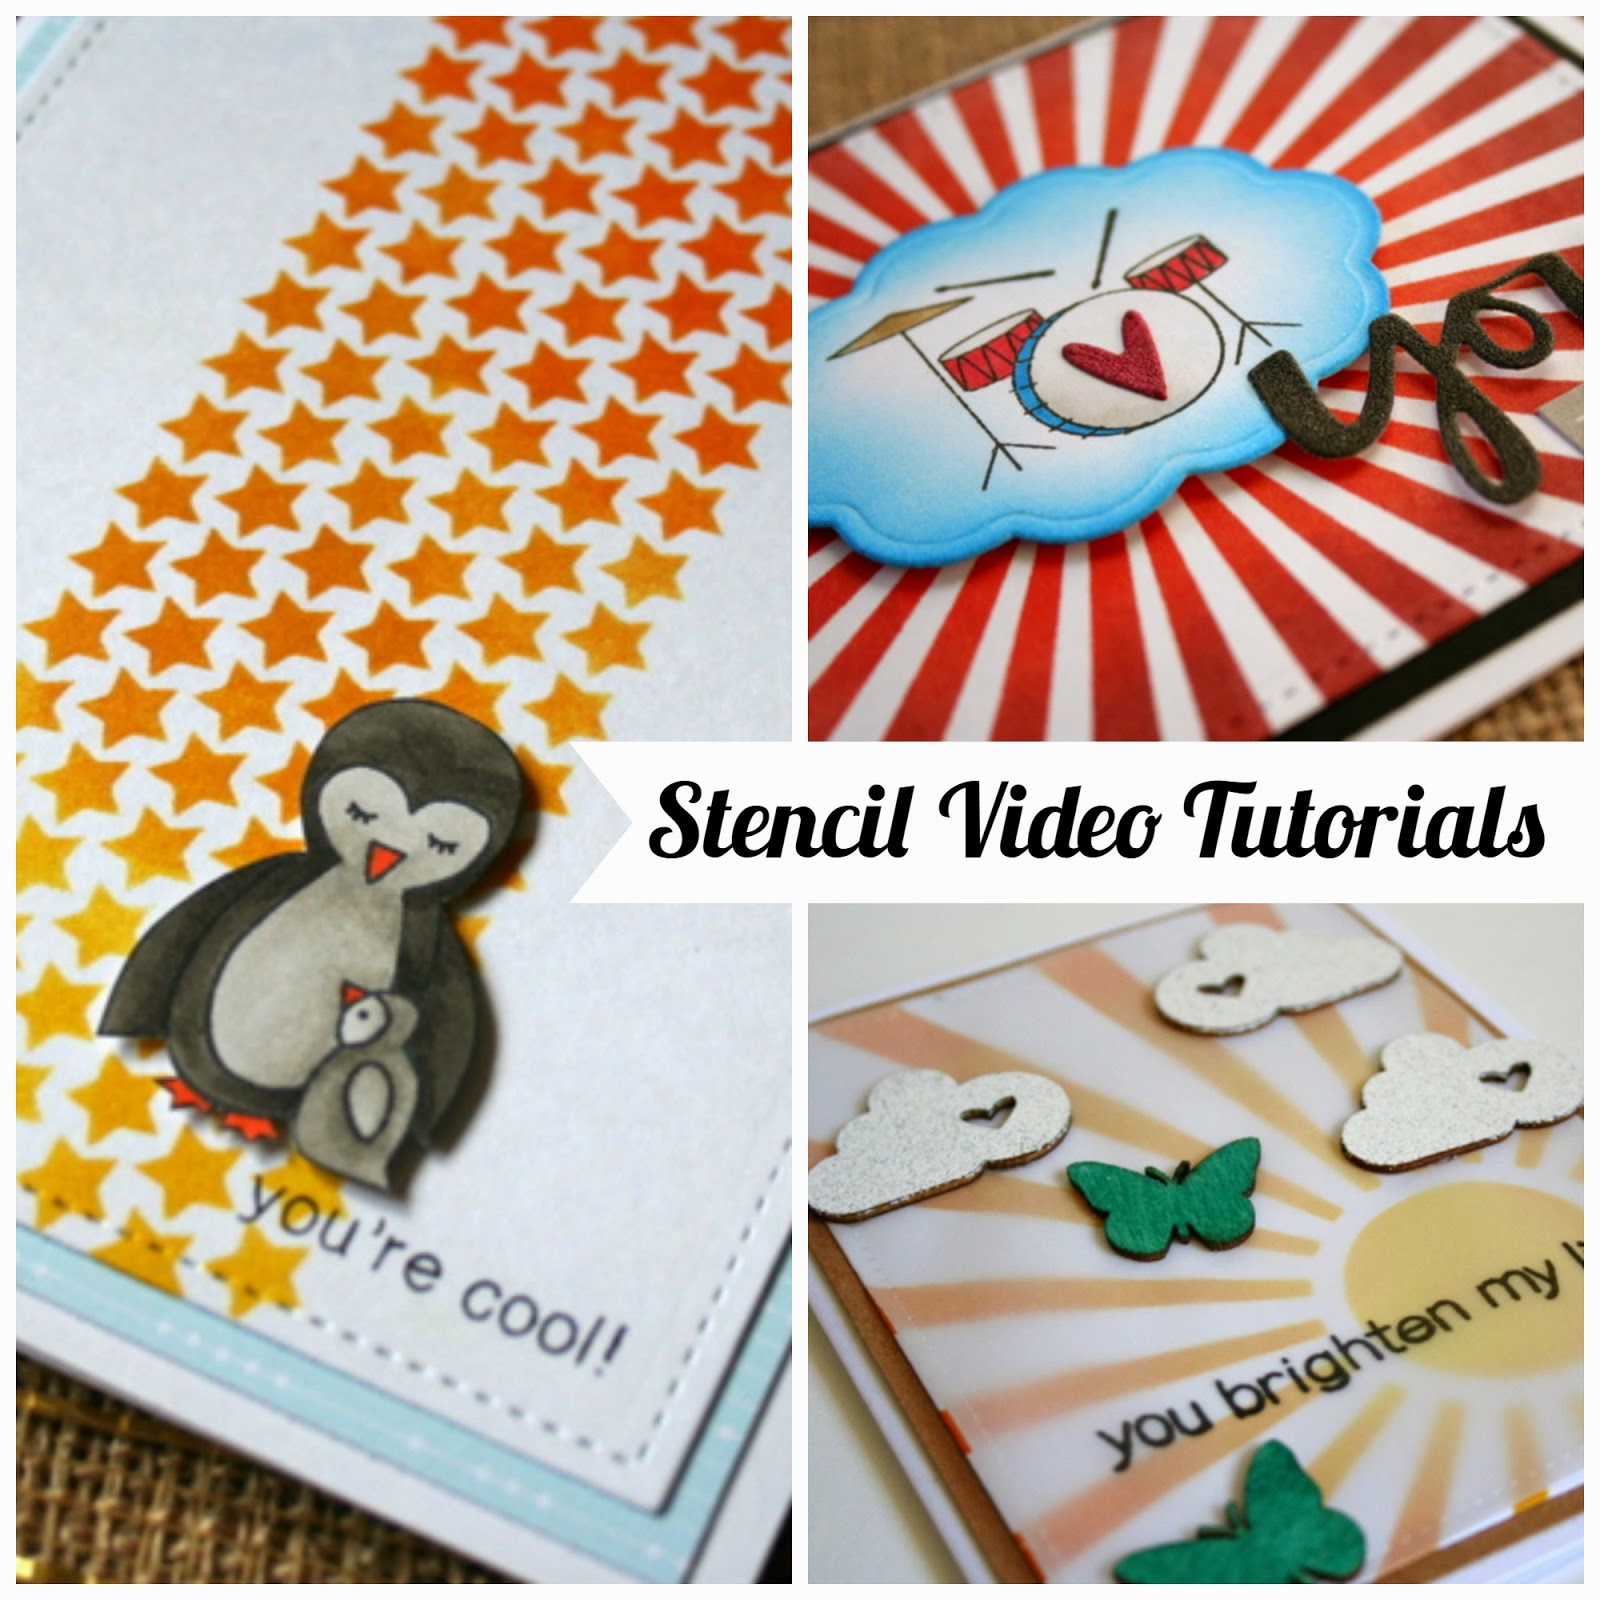 Cards and Projects with Stencils and Video Tutorials